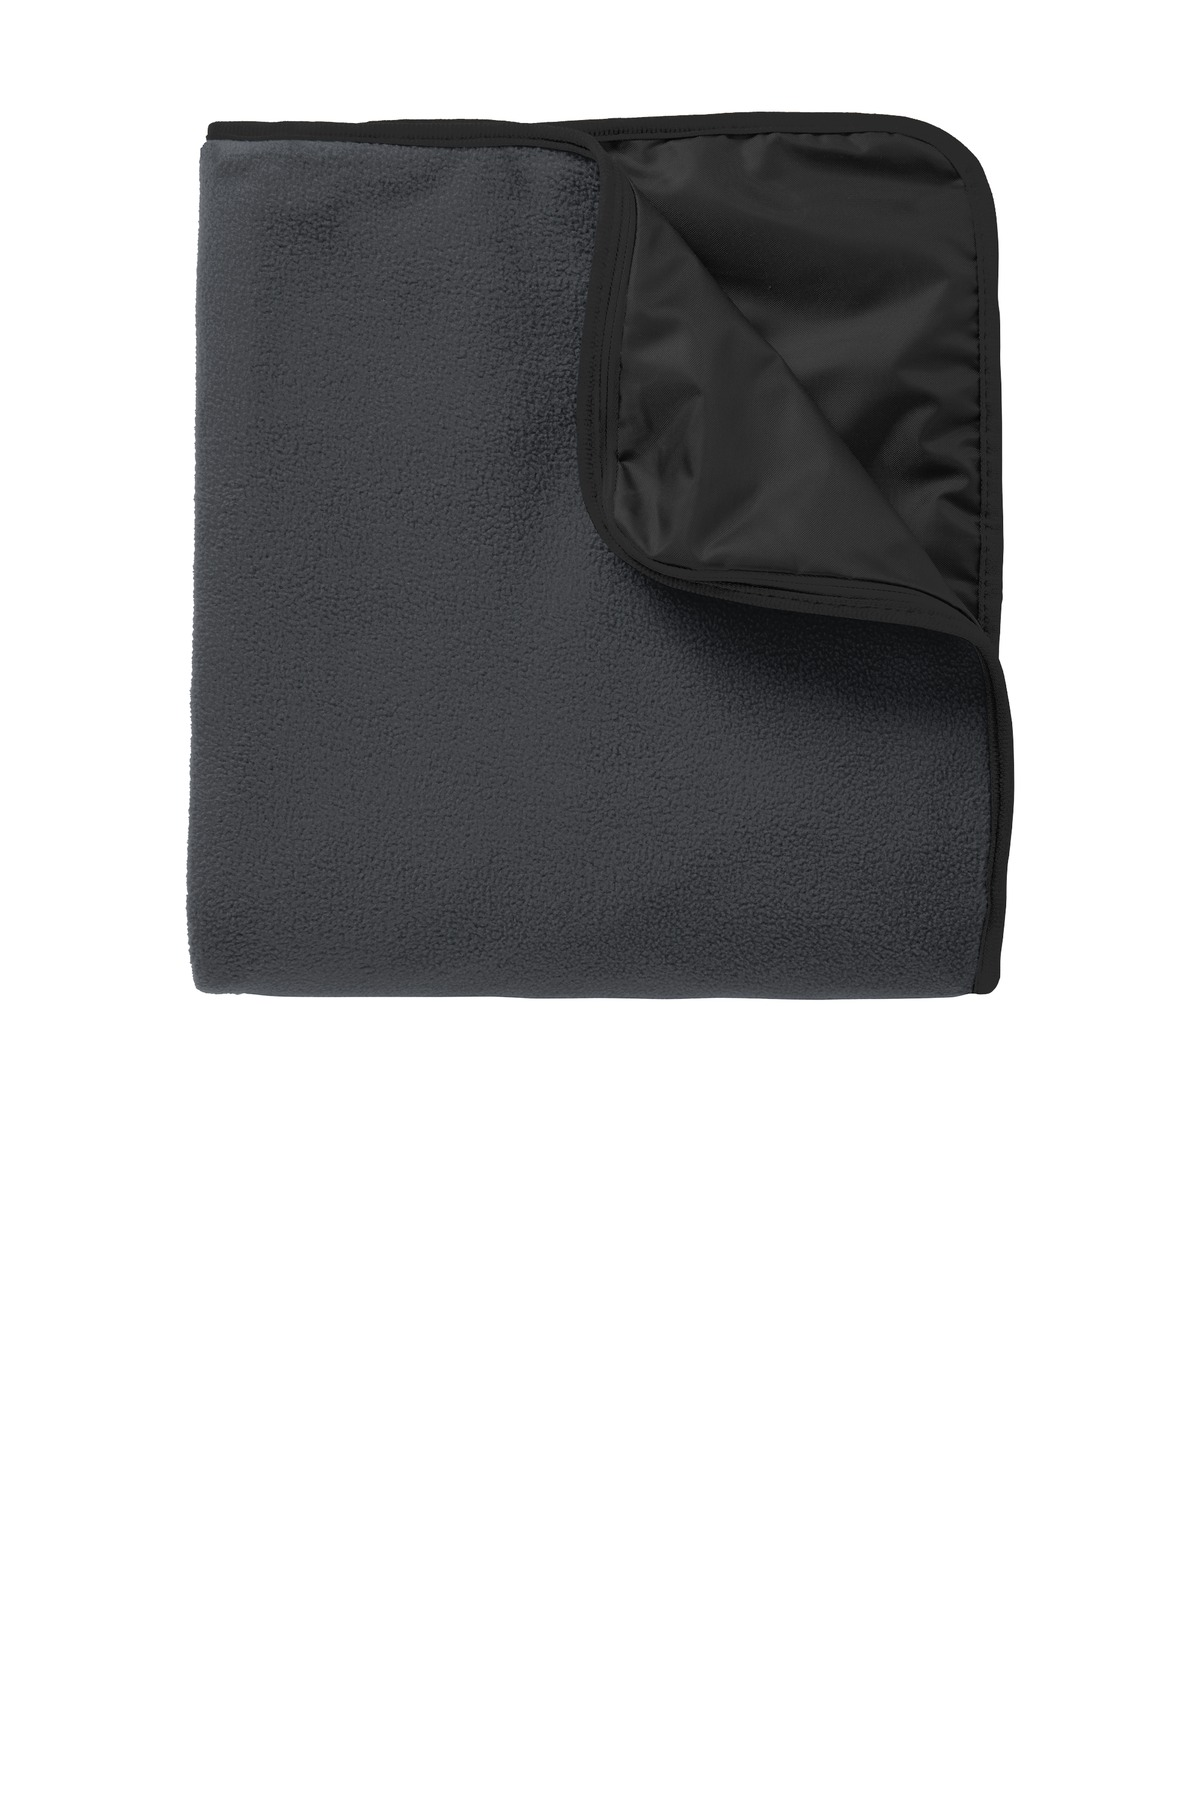 Port Authority  TB850 - Fleece & Poly Travel Blanket